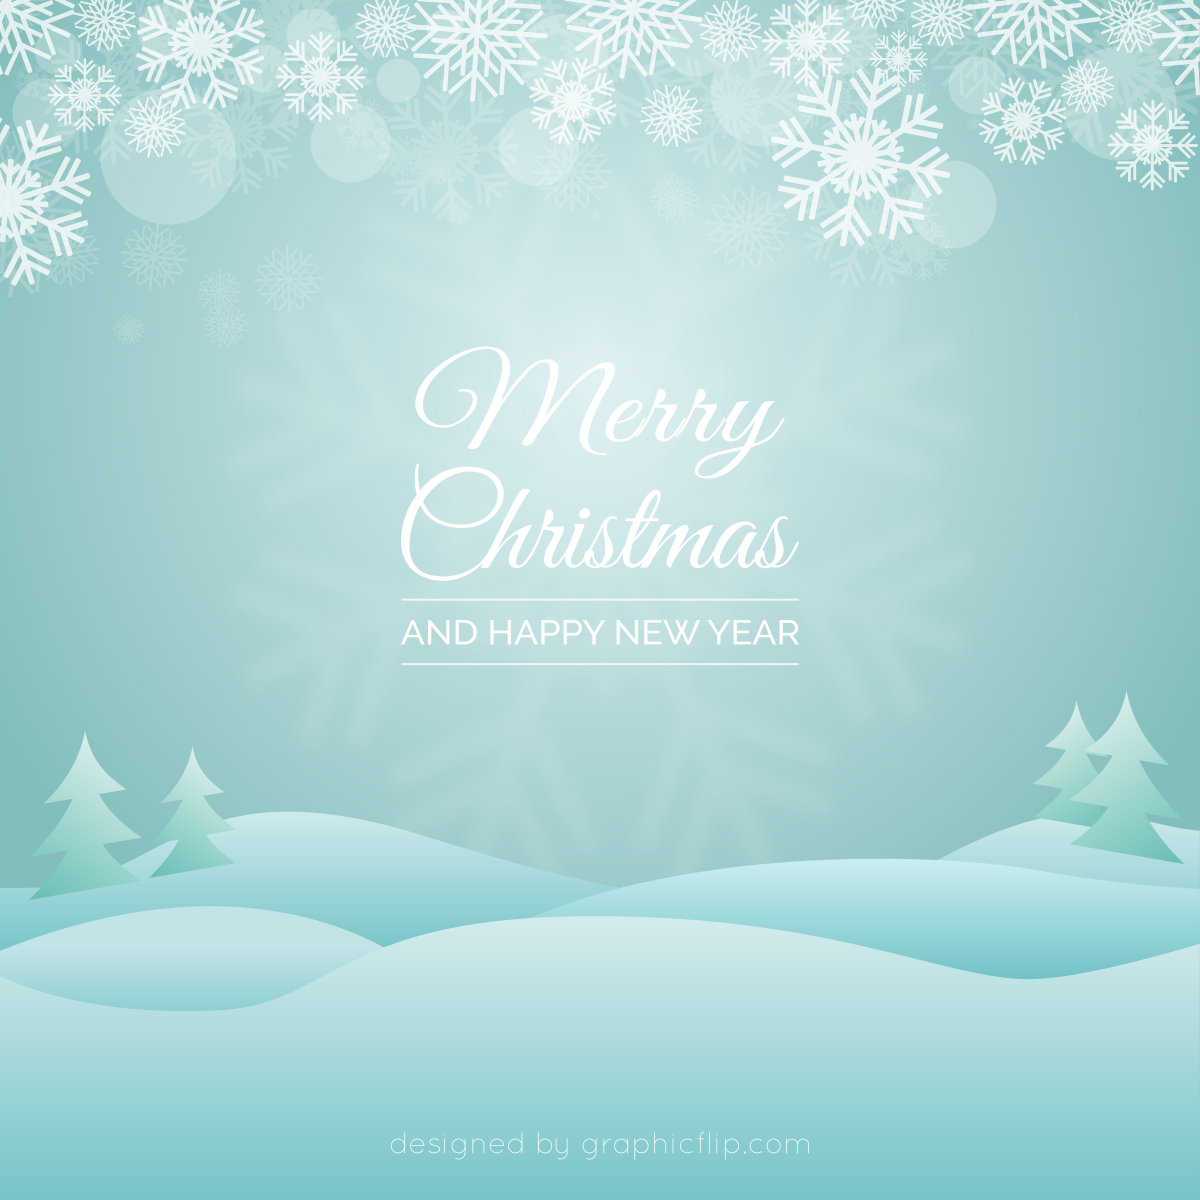 Christmas Greeting Vector Snowy on Text Feature Freebie